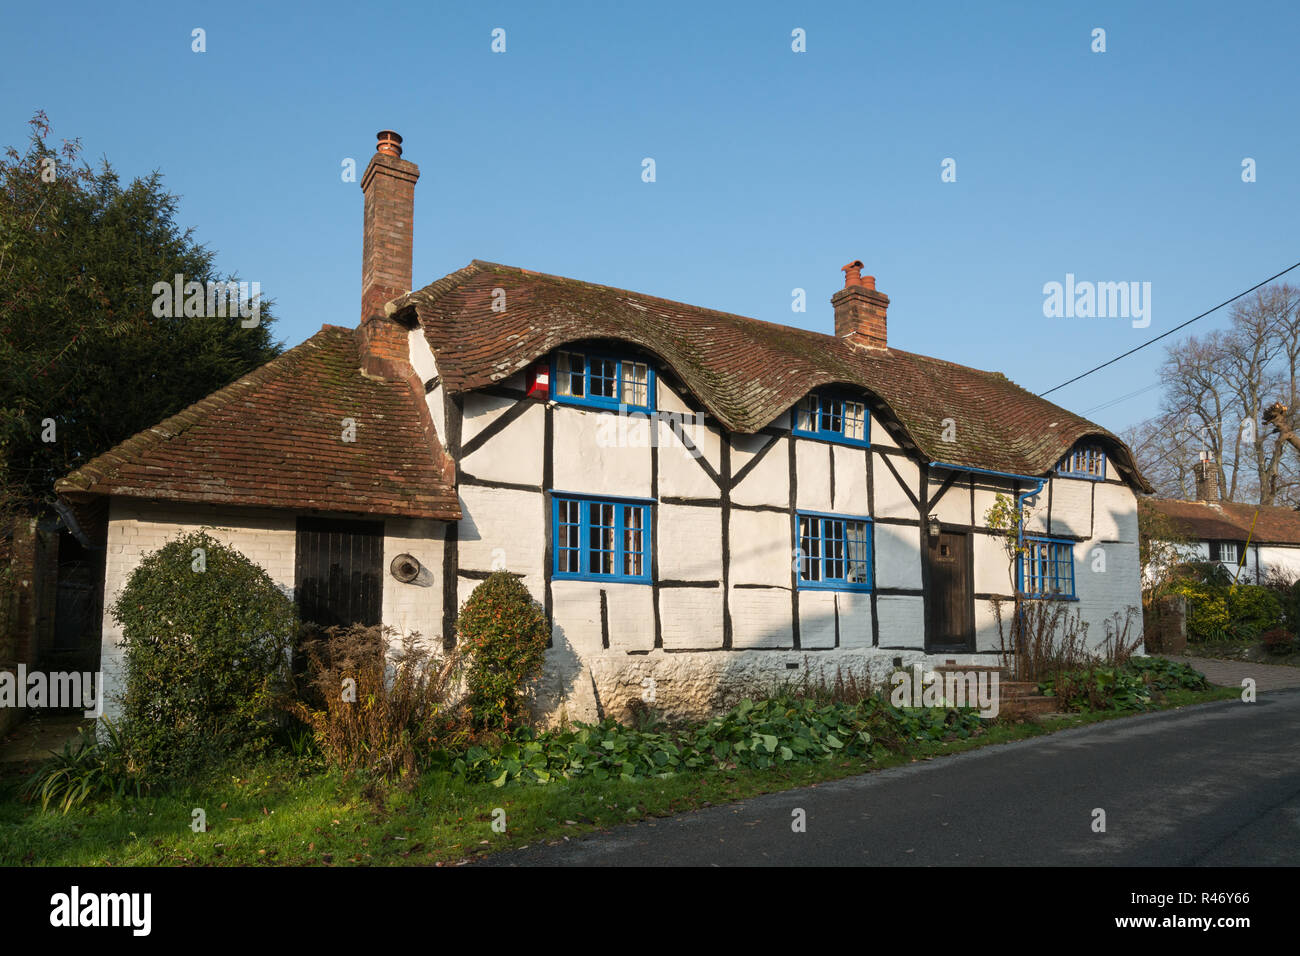 Pretty half timbered cottage in Church Street in the village of Upper Farringdon in Hampshire, UK - Stock Image